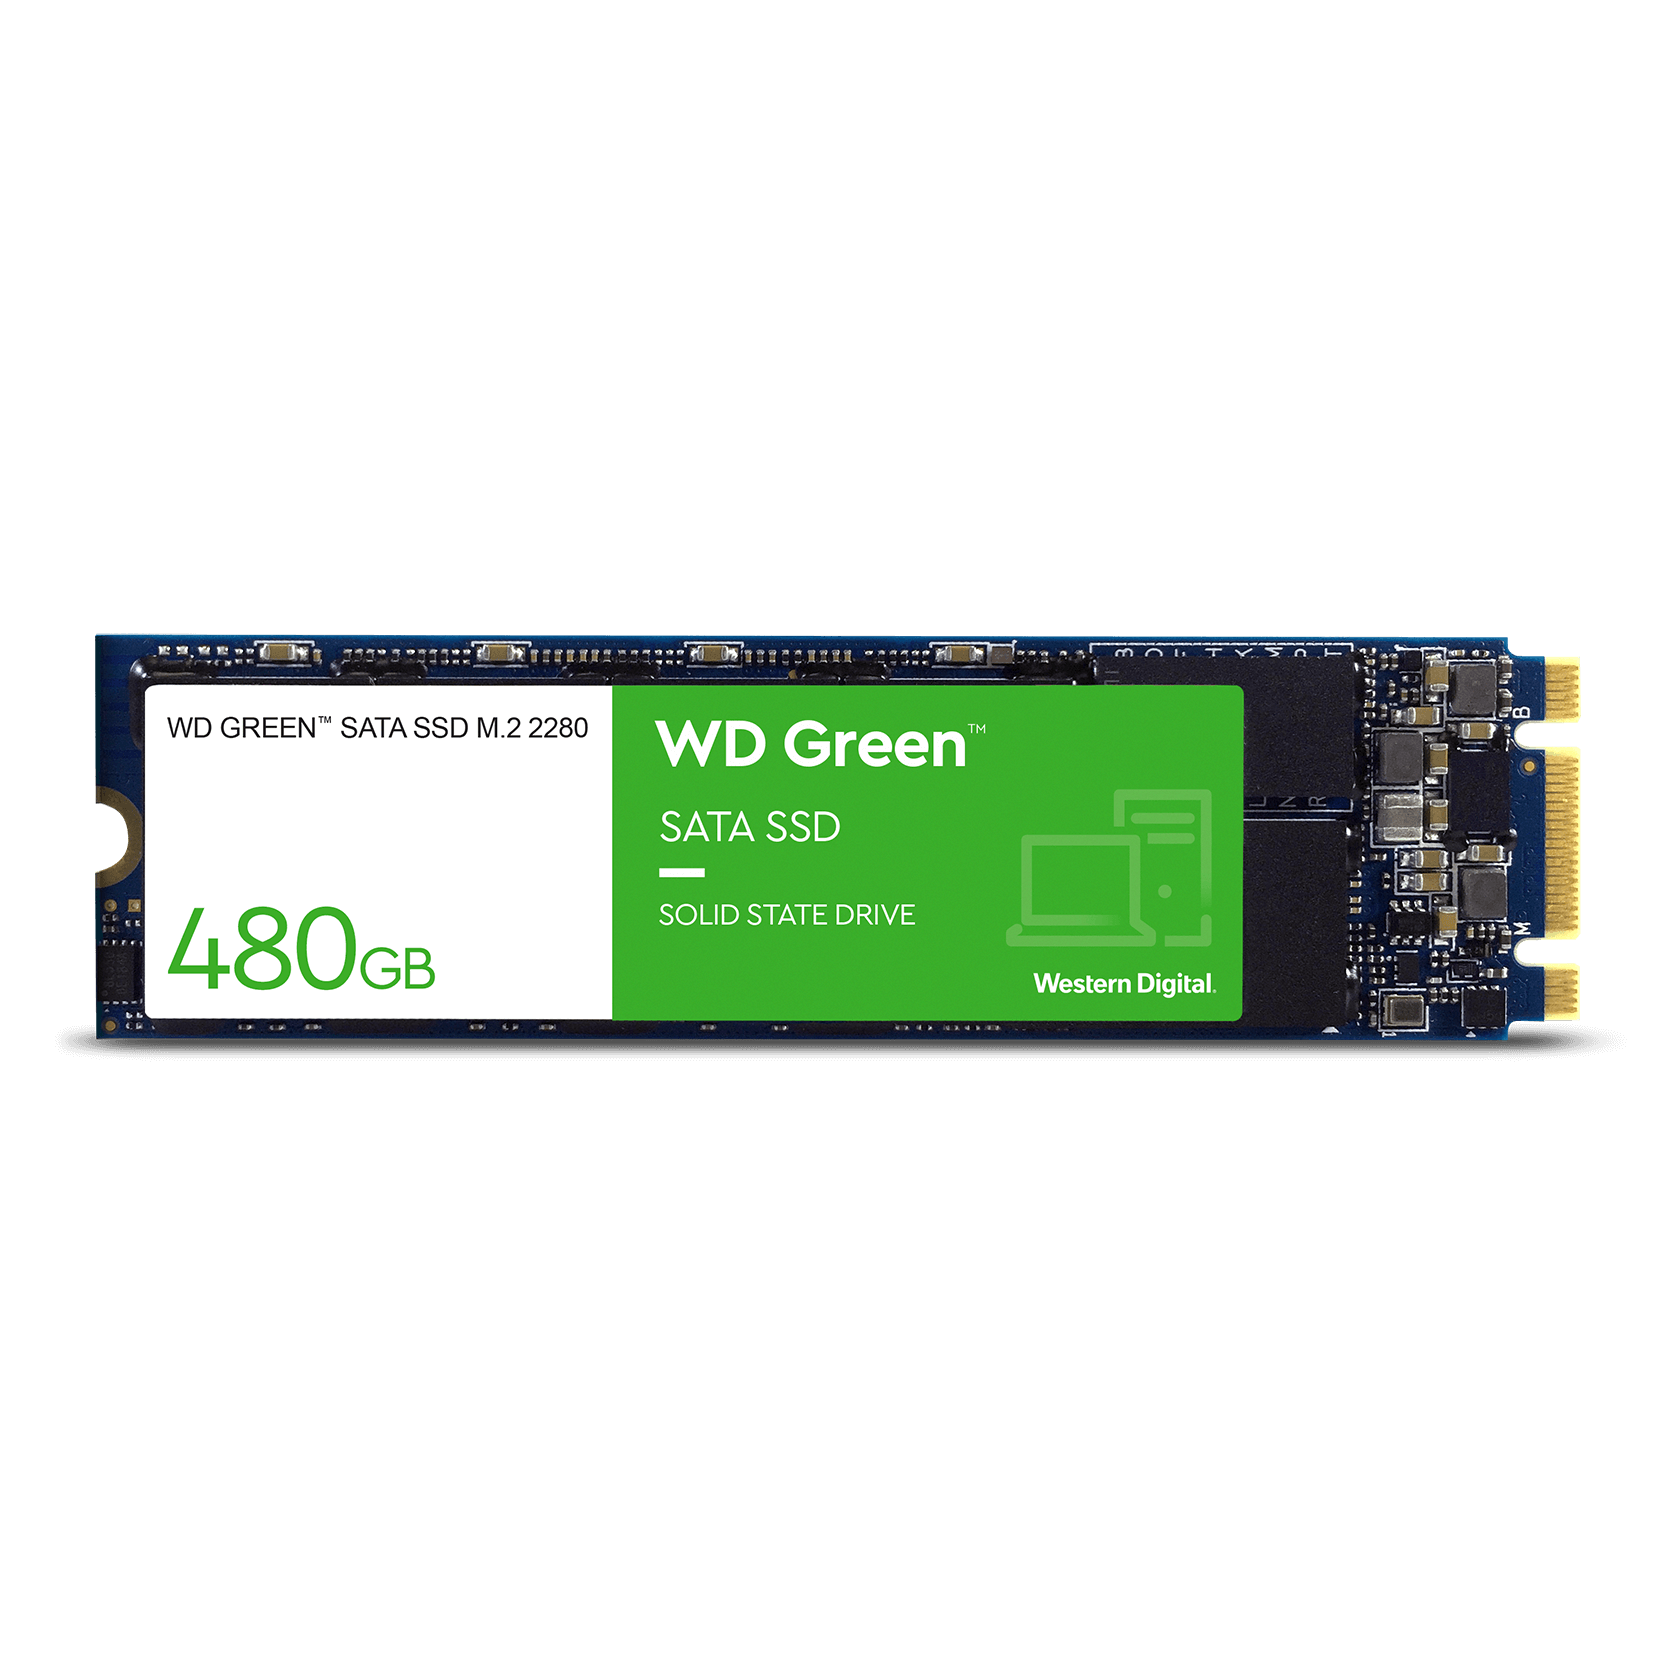 shop.westerndigital.com/content/dam/store/en-us/assets/products/internal-storage/wd-green-ssd/gallery/wd-green-sata-ssd-M2-front-480GB.png